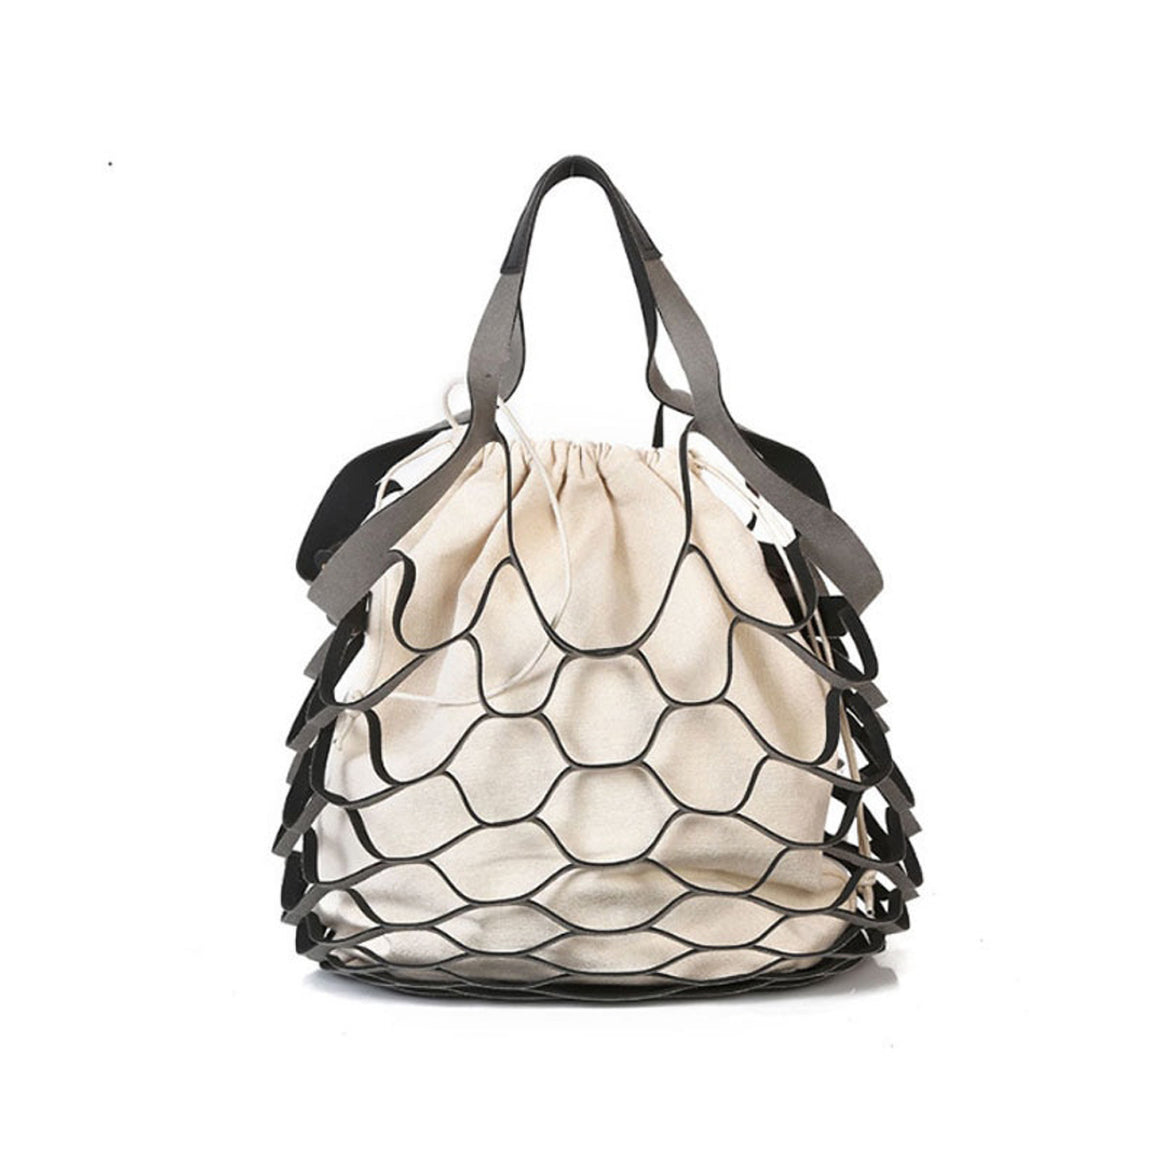 Yesello Personality Hollow Bag Beach Net Drawstring Combination Shoulder Bag  Summer Totes Hand Bags Travel Handbags INS Popular